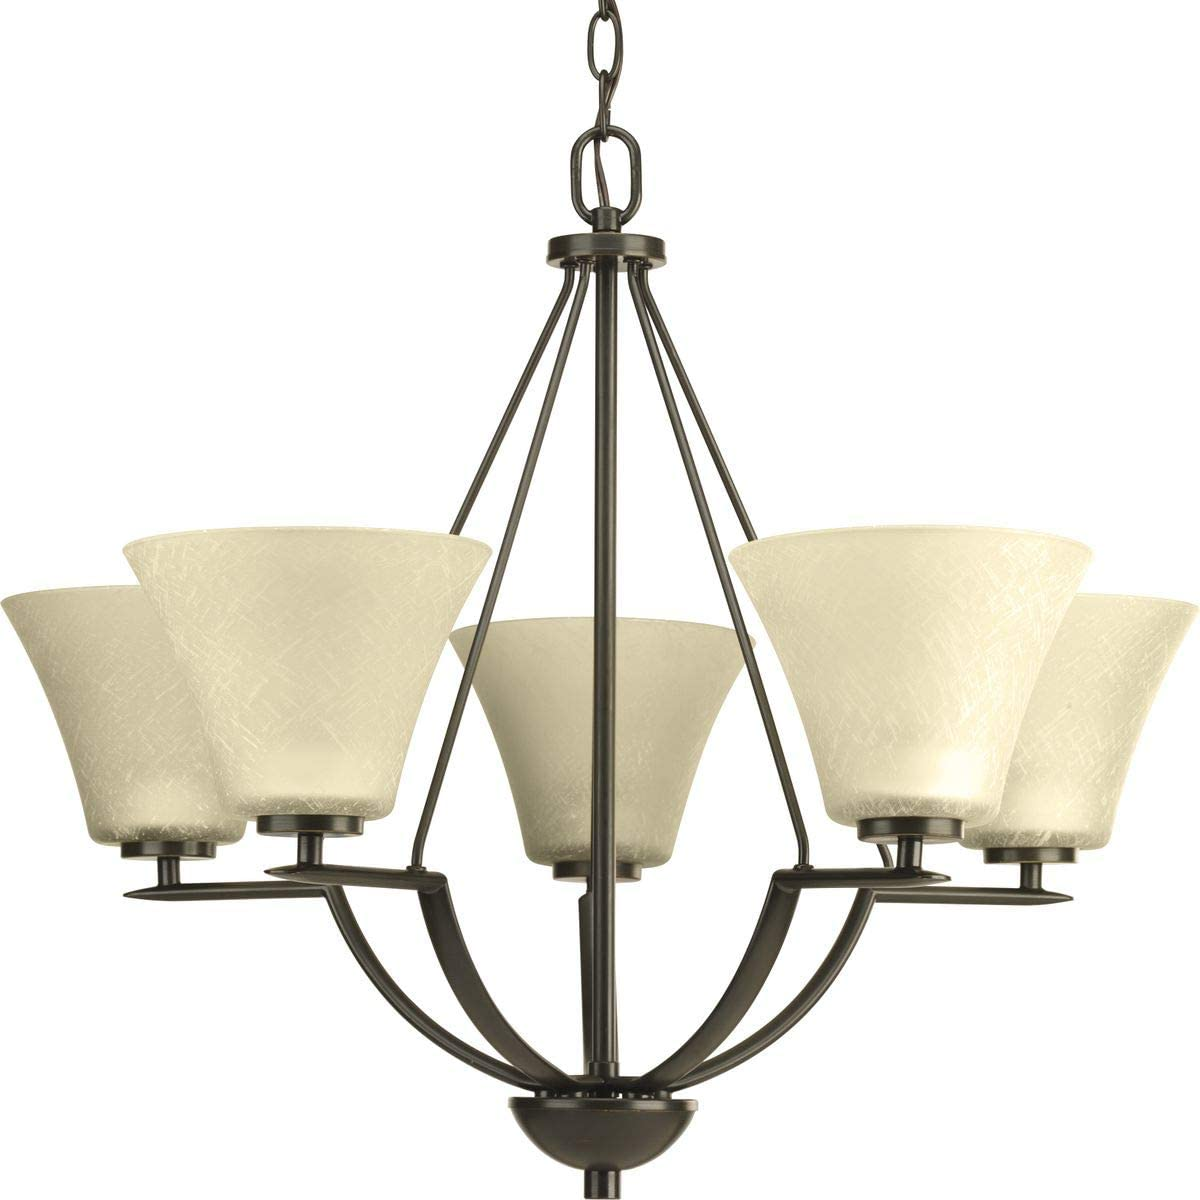 Progress Lighting P4623-20 Transitional Five Light Chandelier from Bravo Collection Dark Finish, Antique Bronze